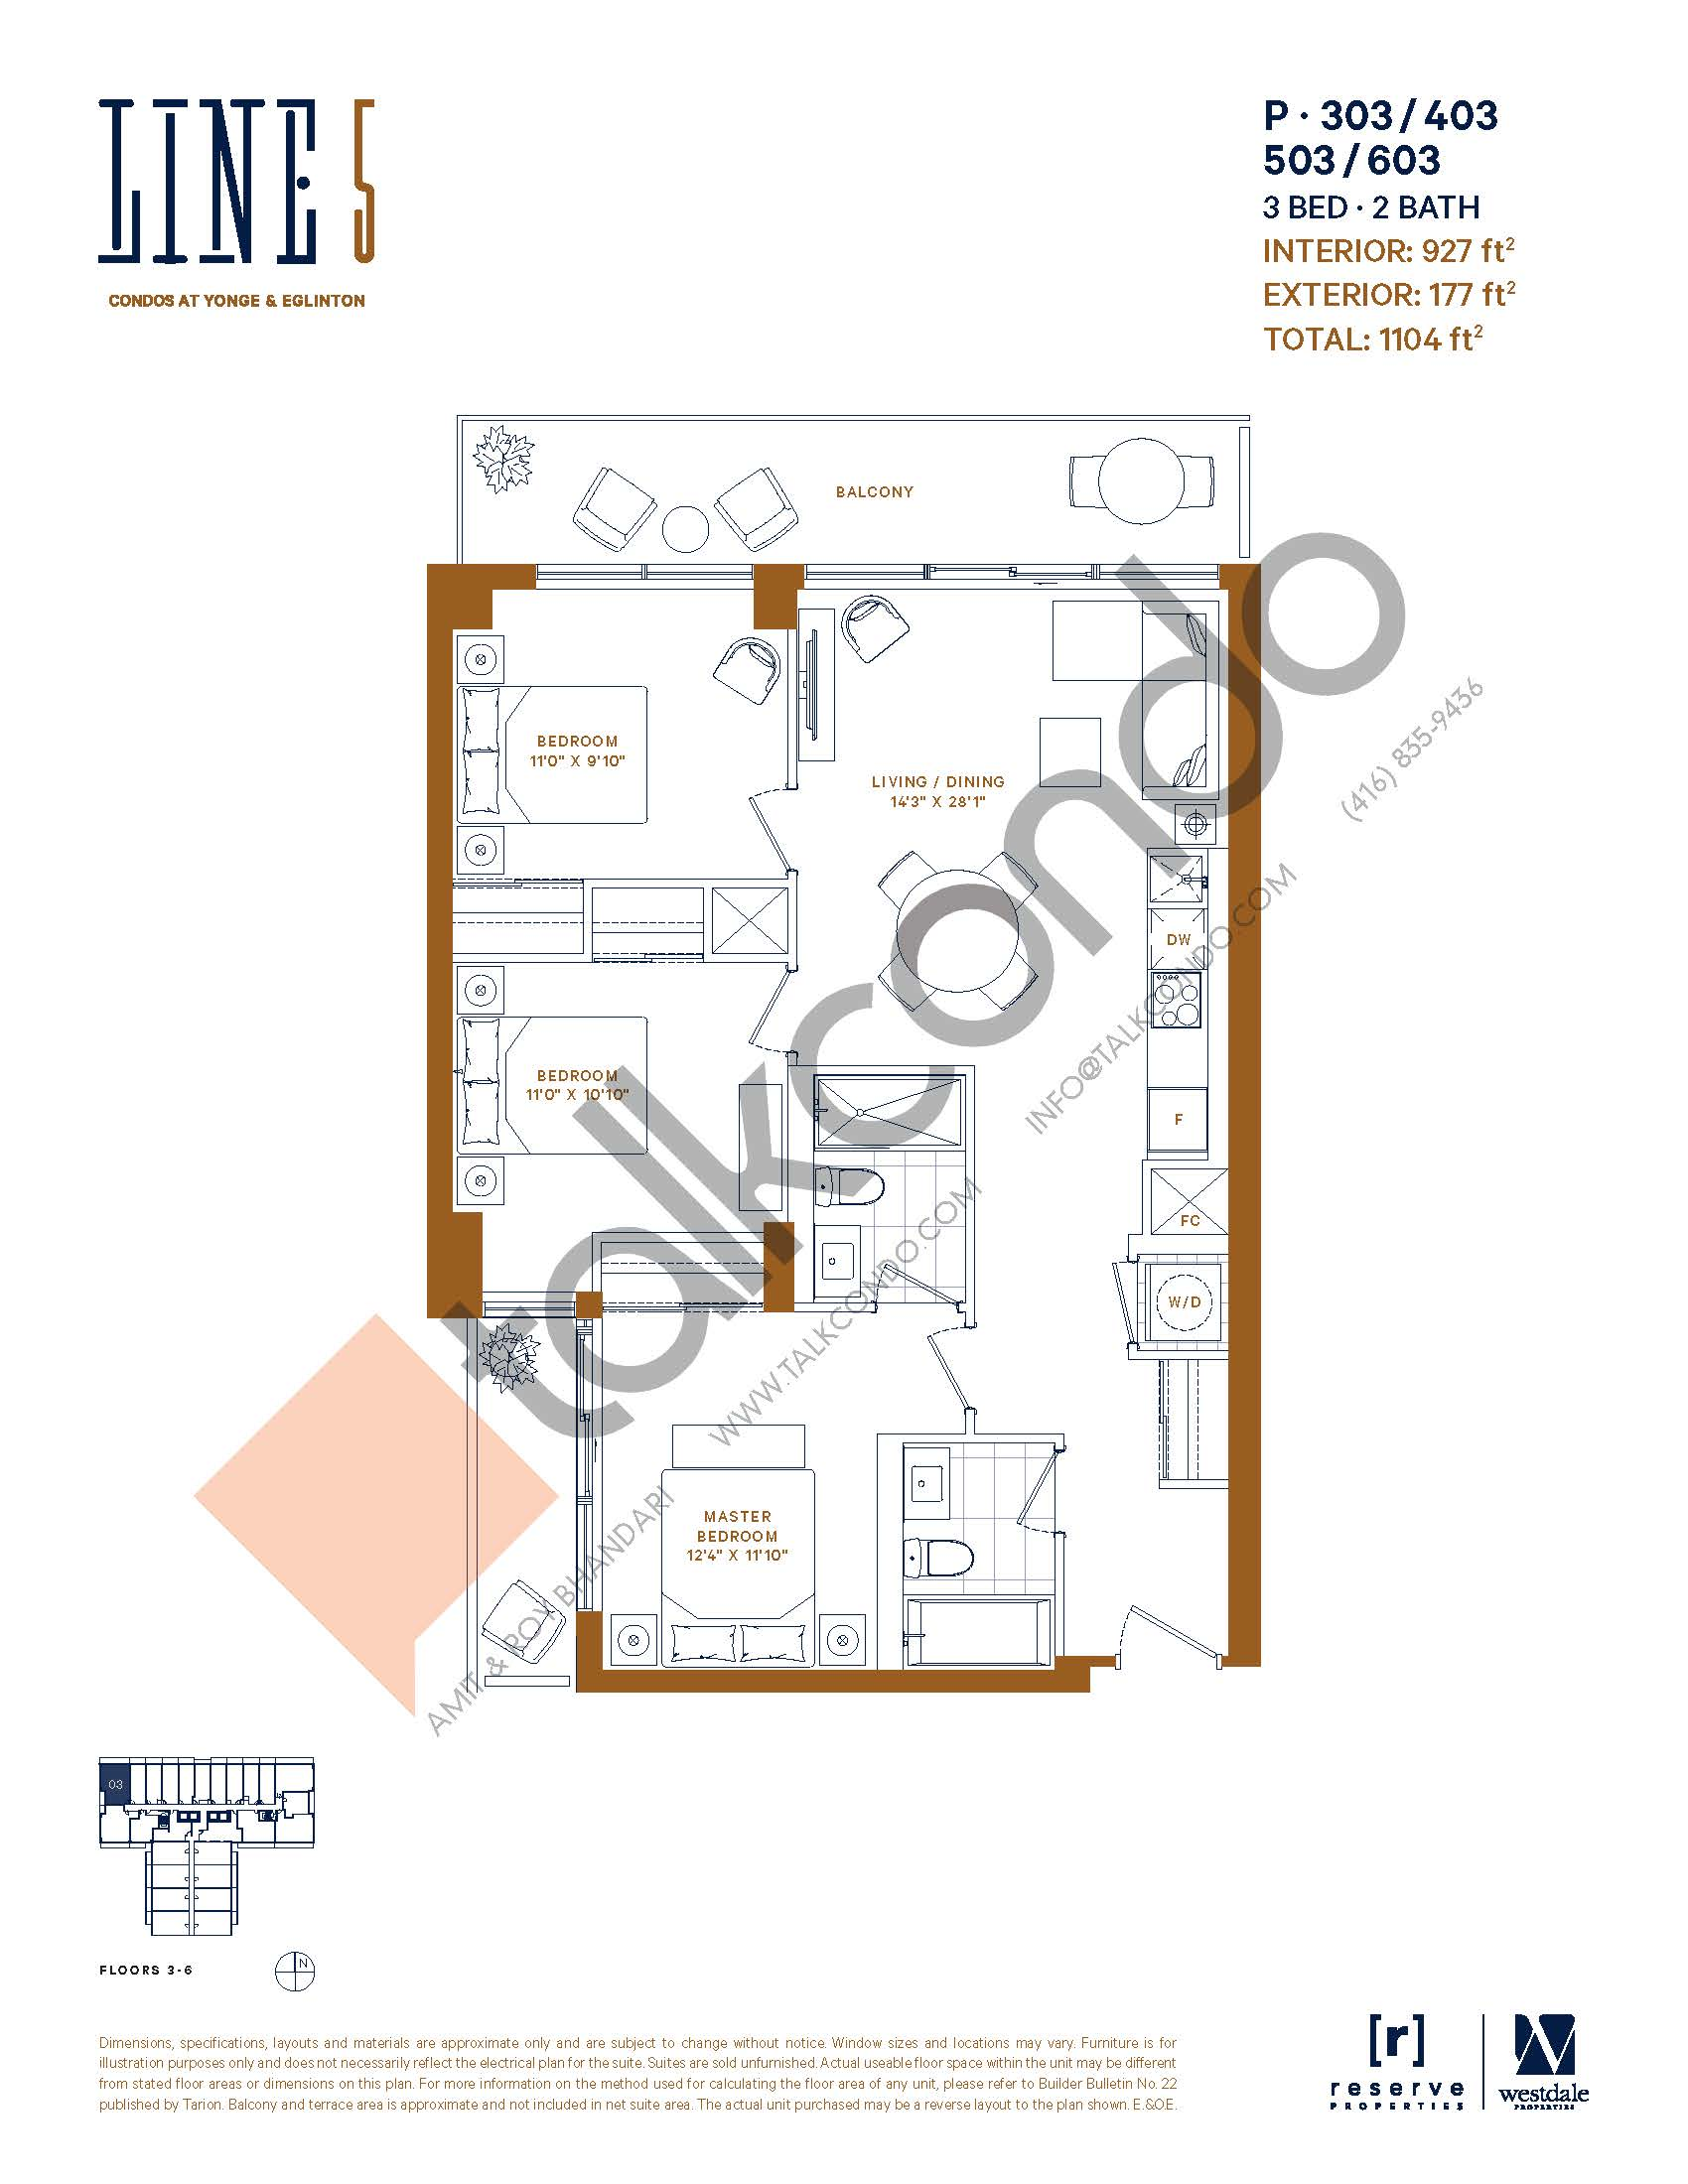 P-303 / 403 / 503 / 603 Floor Plan at Line 5 South Tower Condos - 927 sq.ft